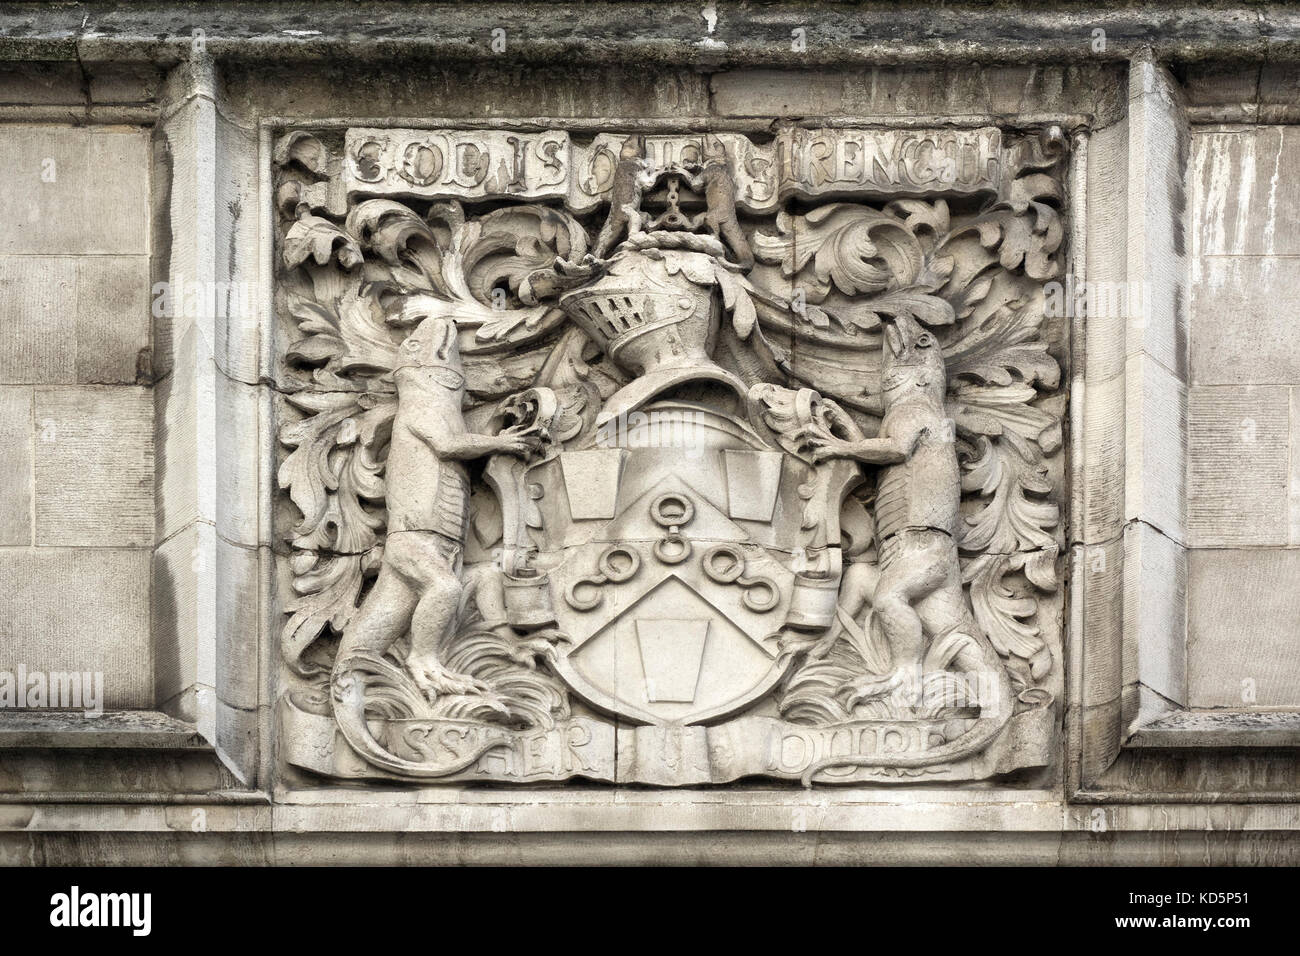 COAT OF ARMS OF THE WORSHIPFUL COMPANY OF IRONMONGERS.  carved above the door of the Ironmongers Hall, Shaftesbury - Stock Image